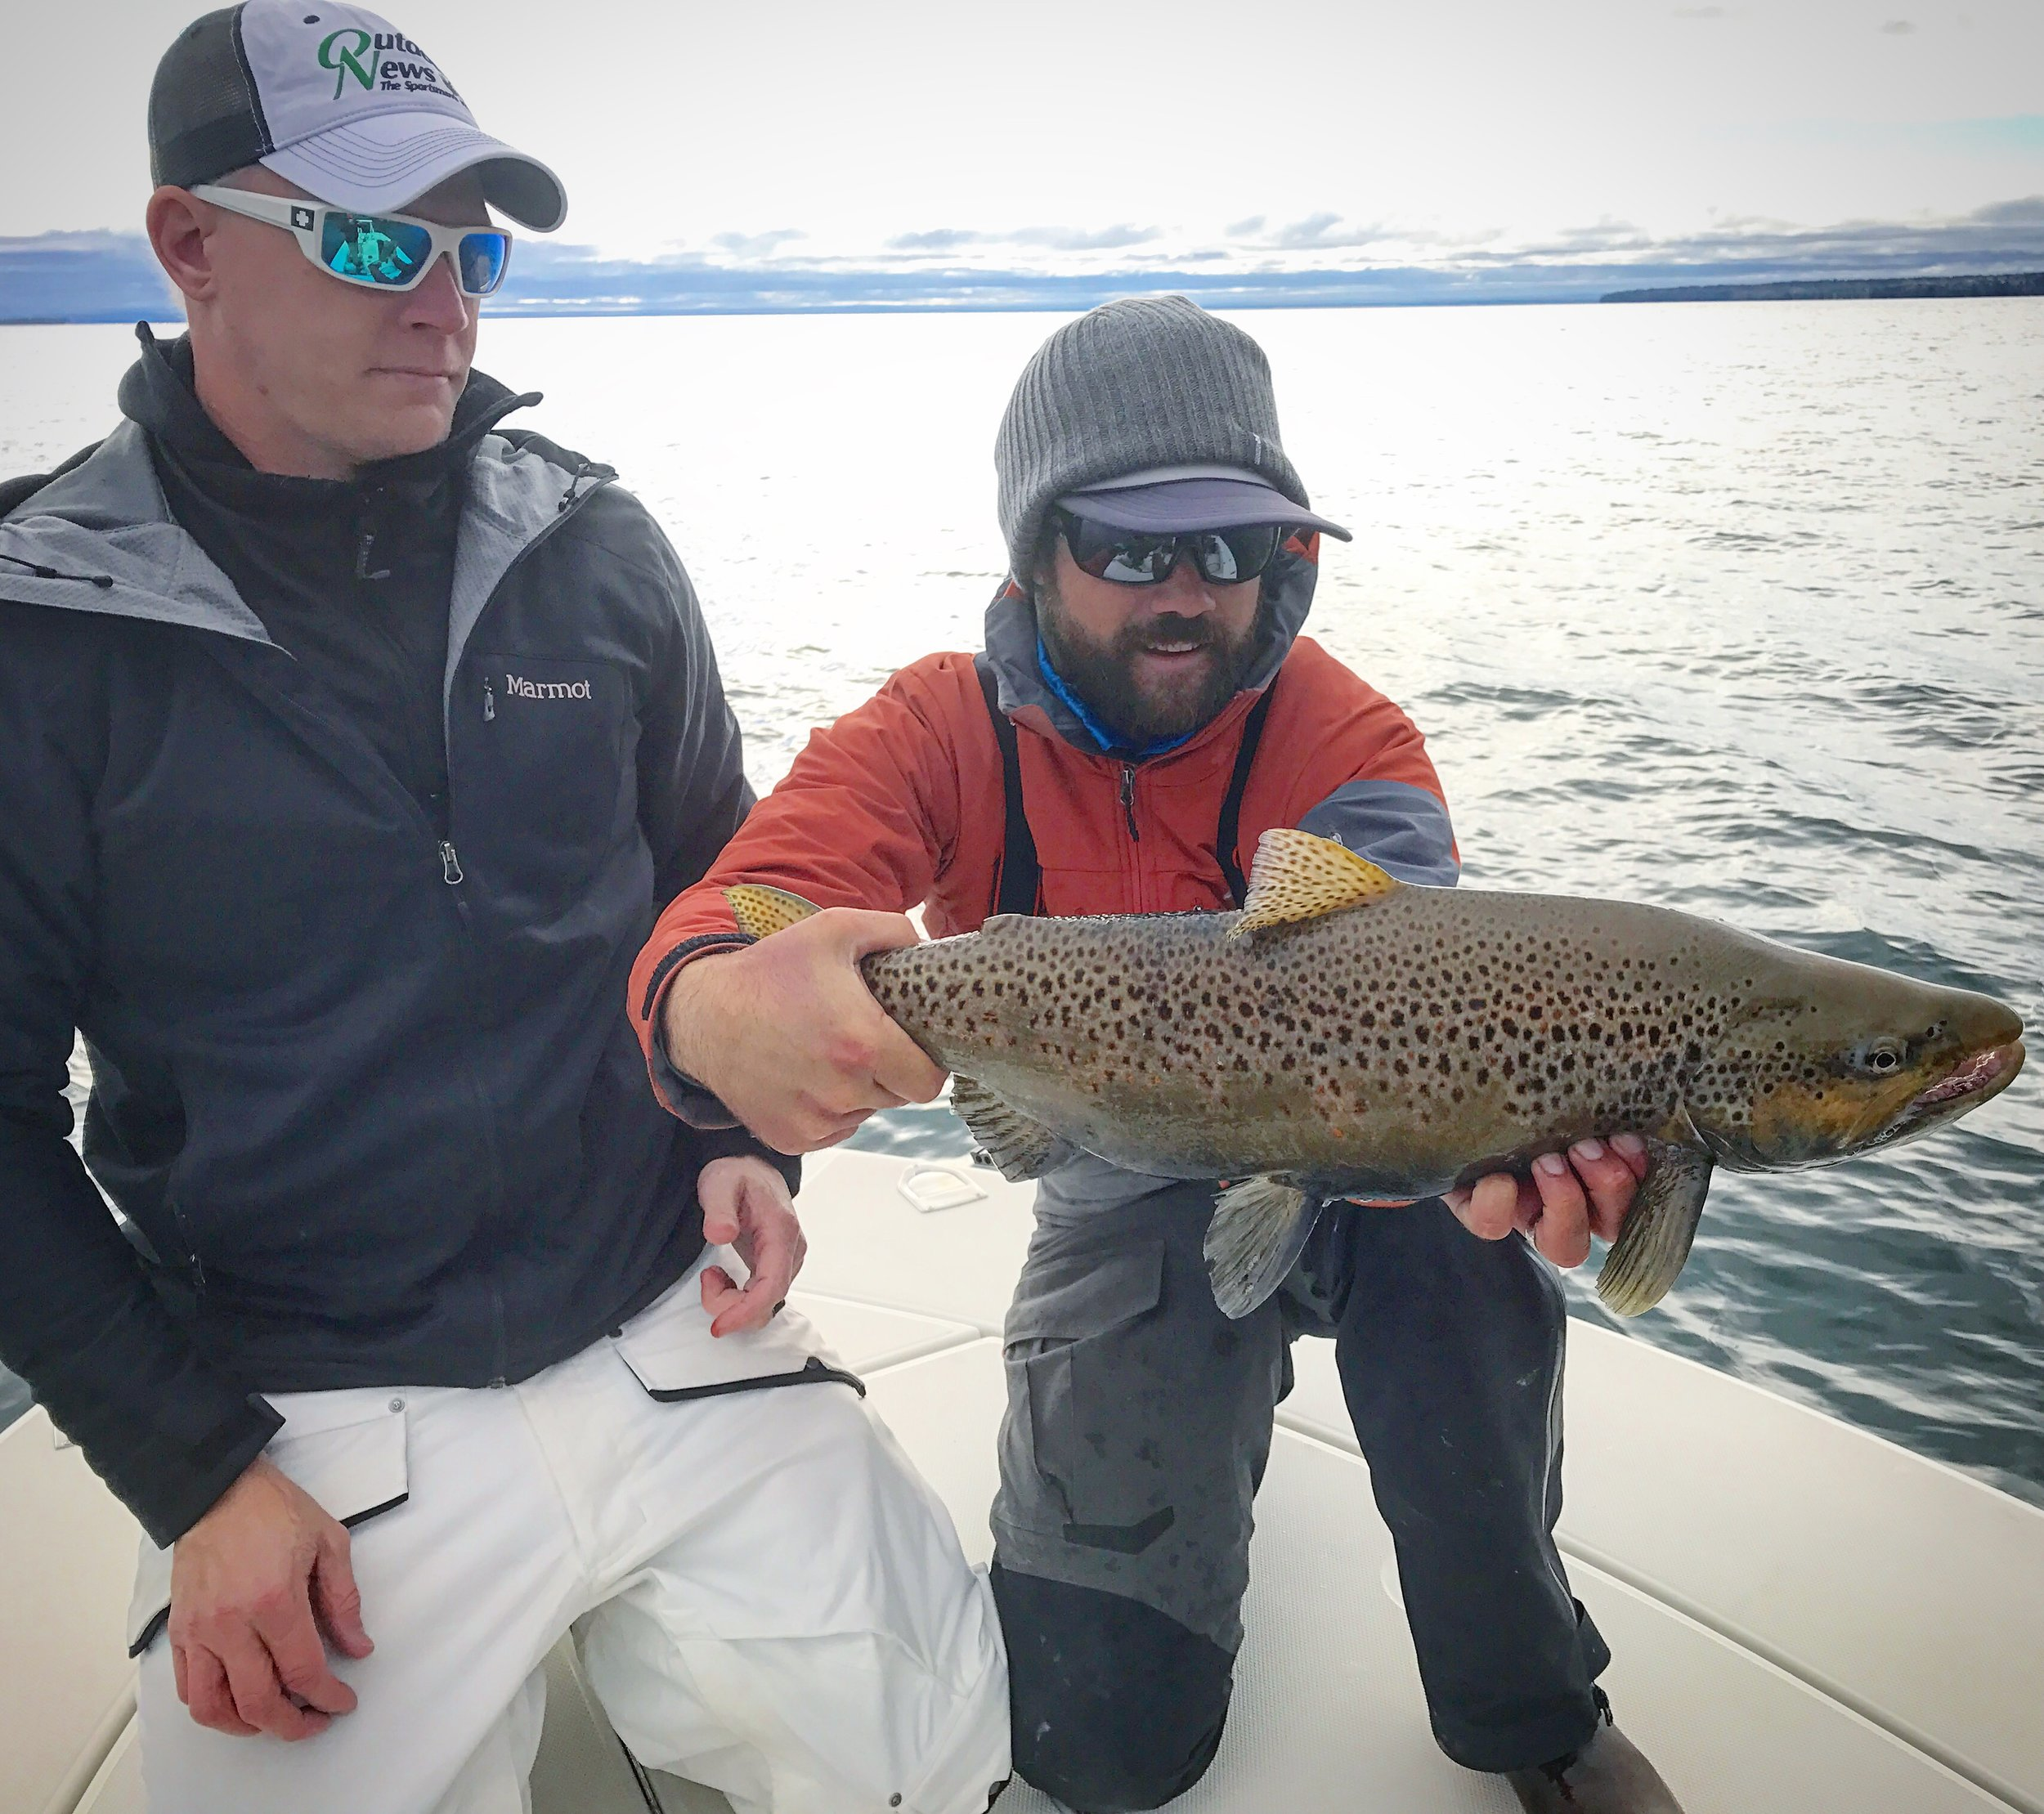 So many things to do in the fall. Catching big Browns and Smallmouth is one.